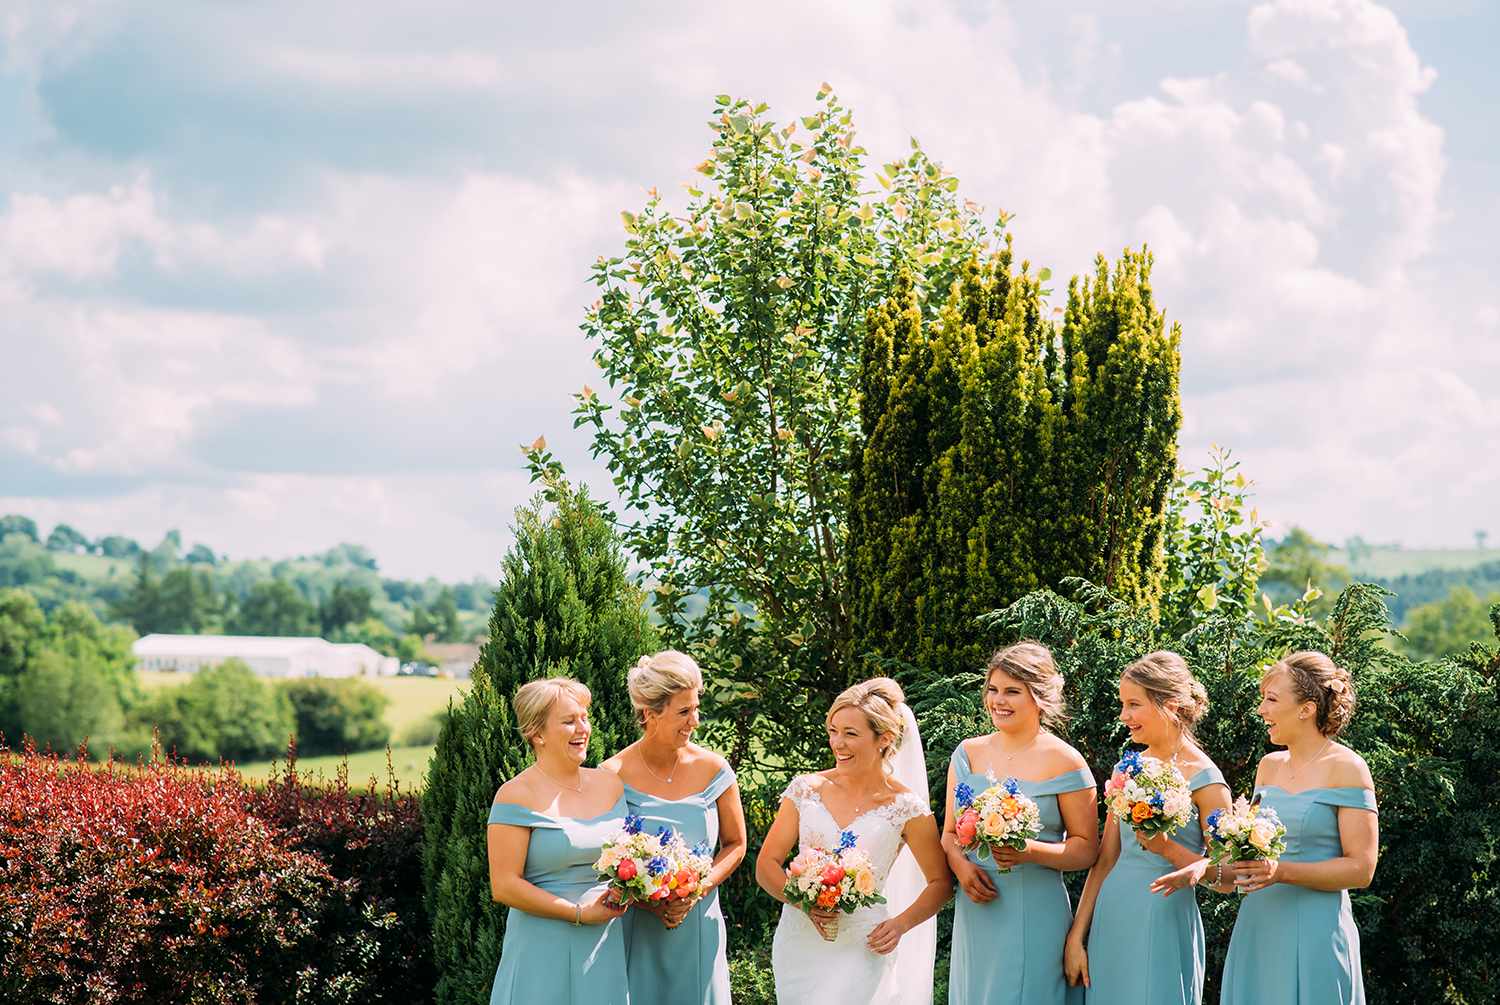 the bride and bridesmaids just before leaving for church